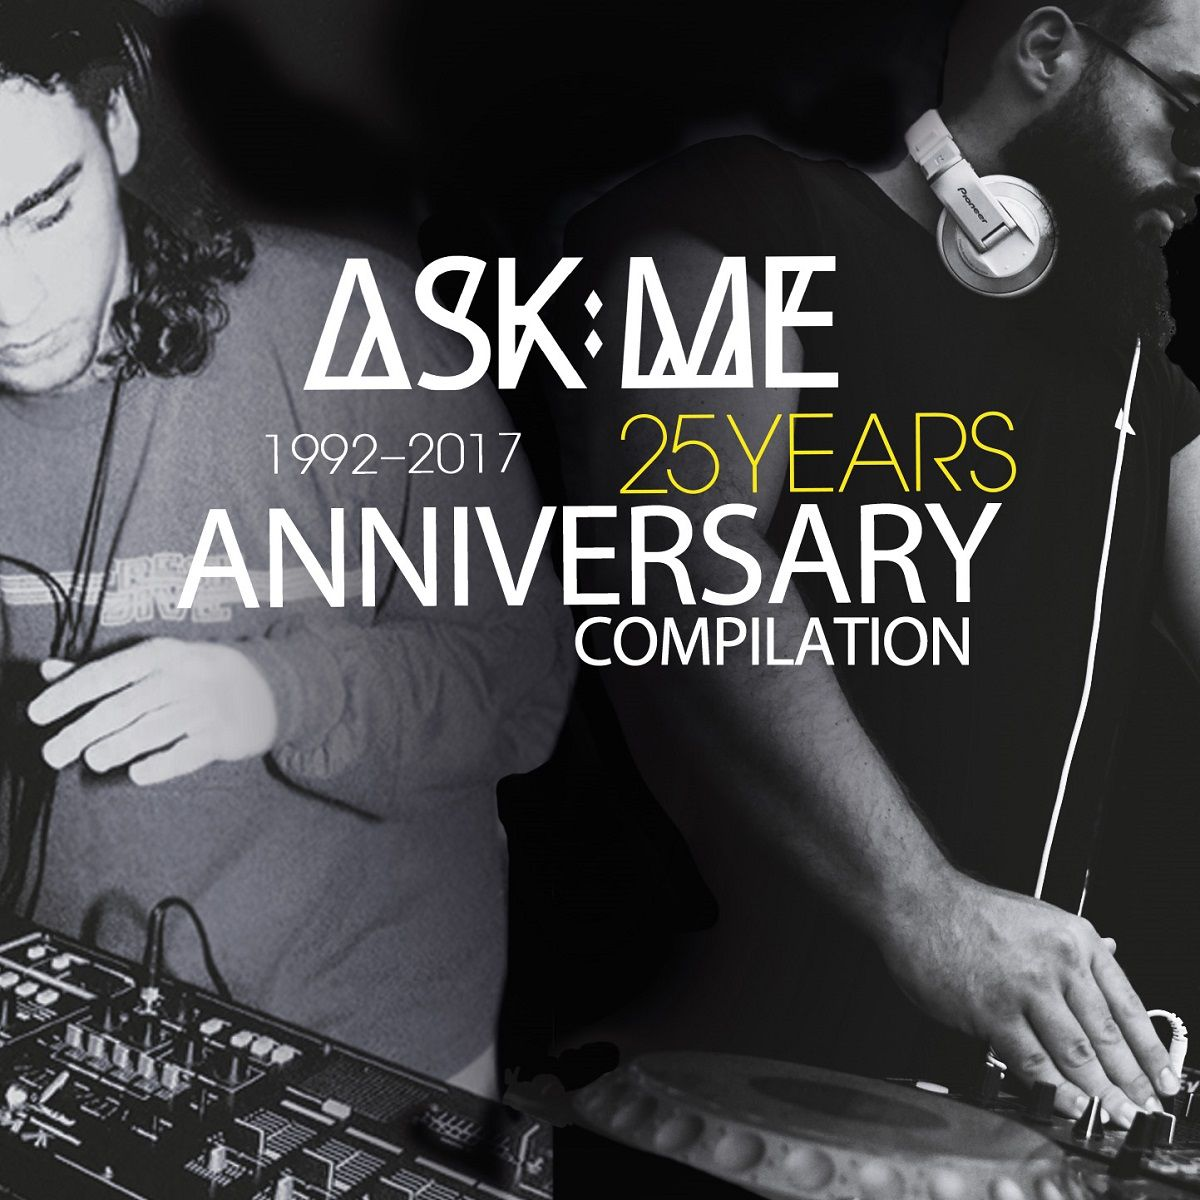 #housemusic ASK:ME - 25 Years Anniversary: 2017 is the year that marks Melih aka ASK:ME's 25th anniversary since he started his career as a…